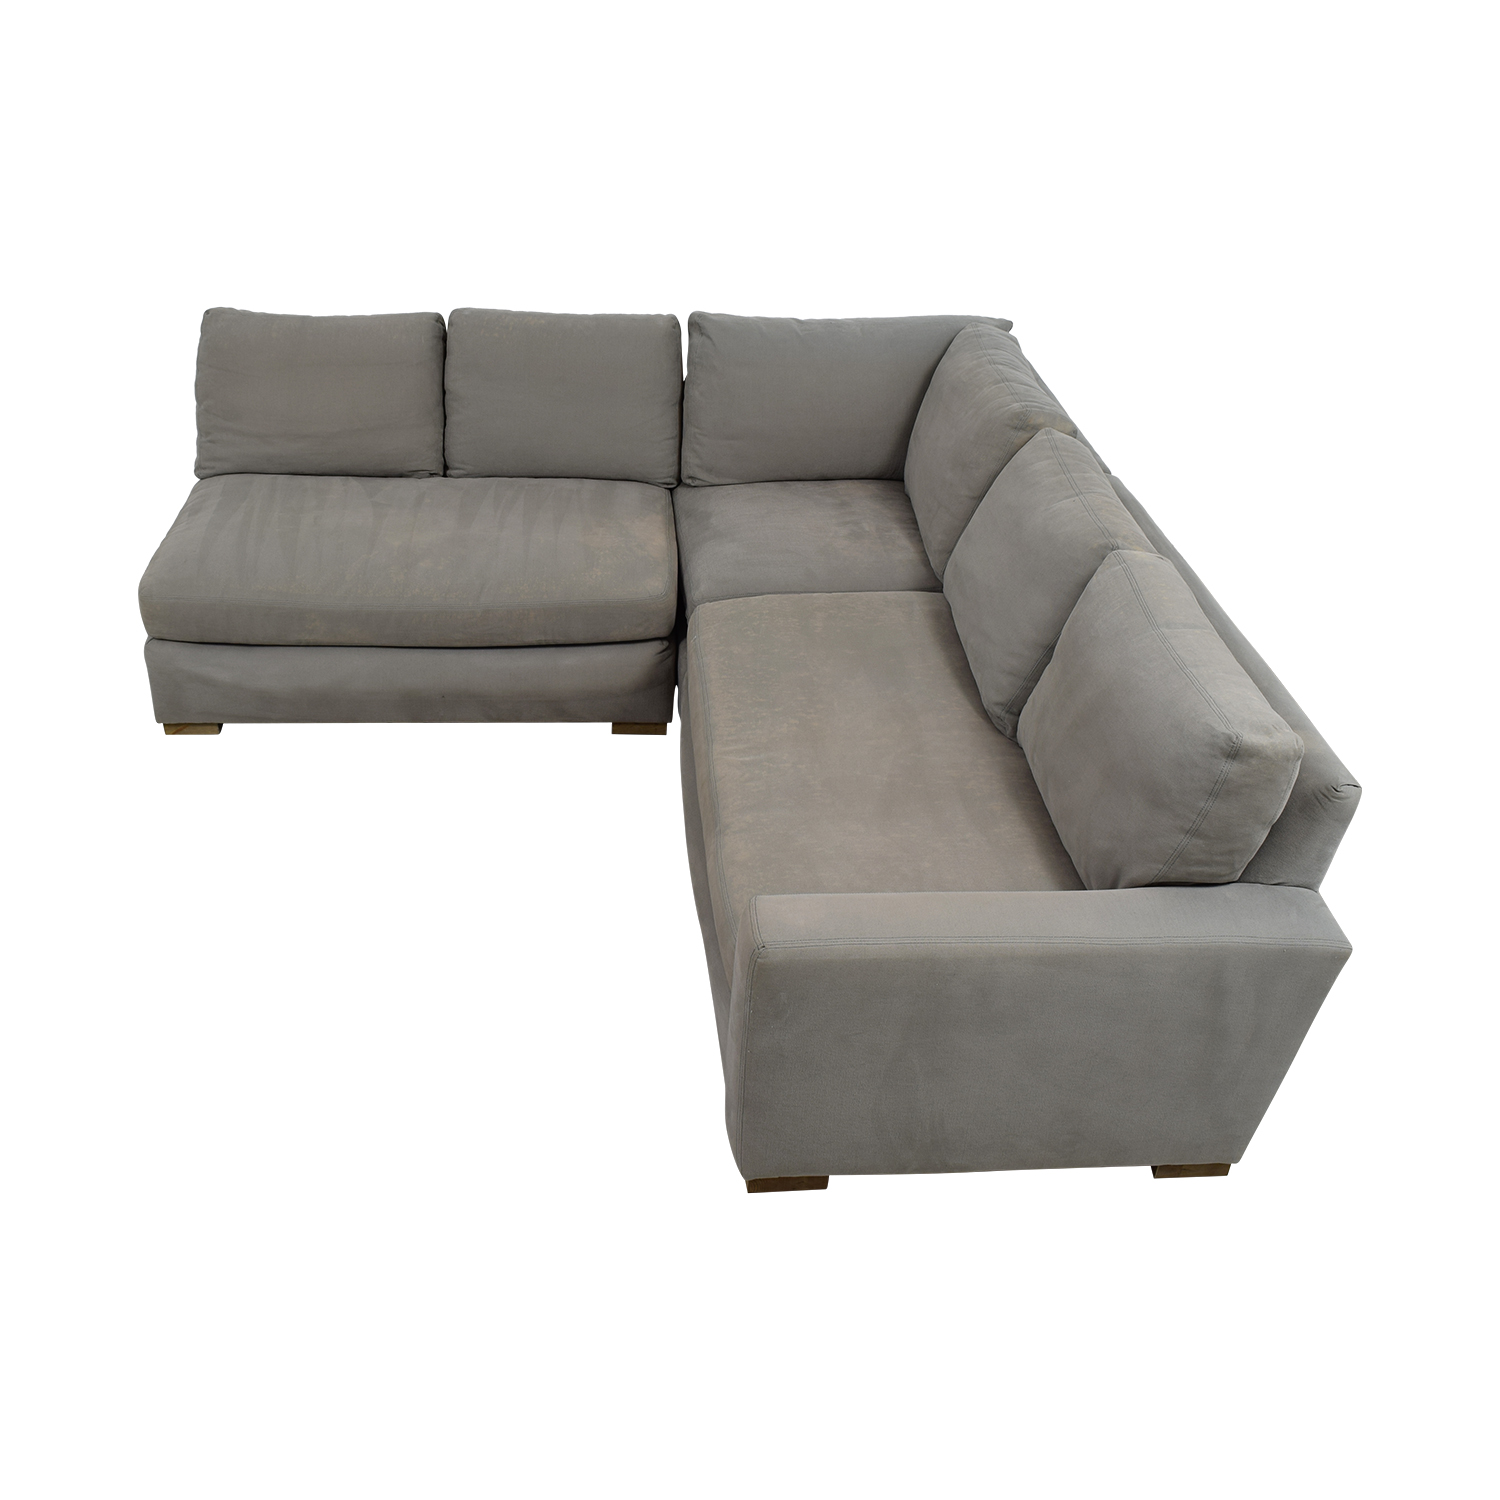 buy Restoration Hardware Restoration Hardware Grey L-Shaped Sectional online